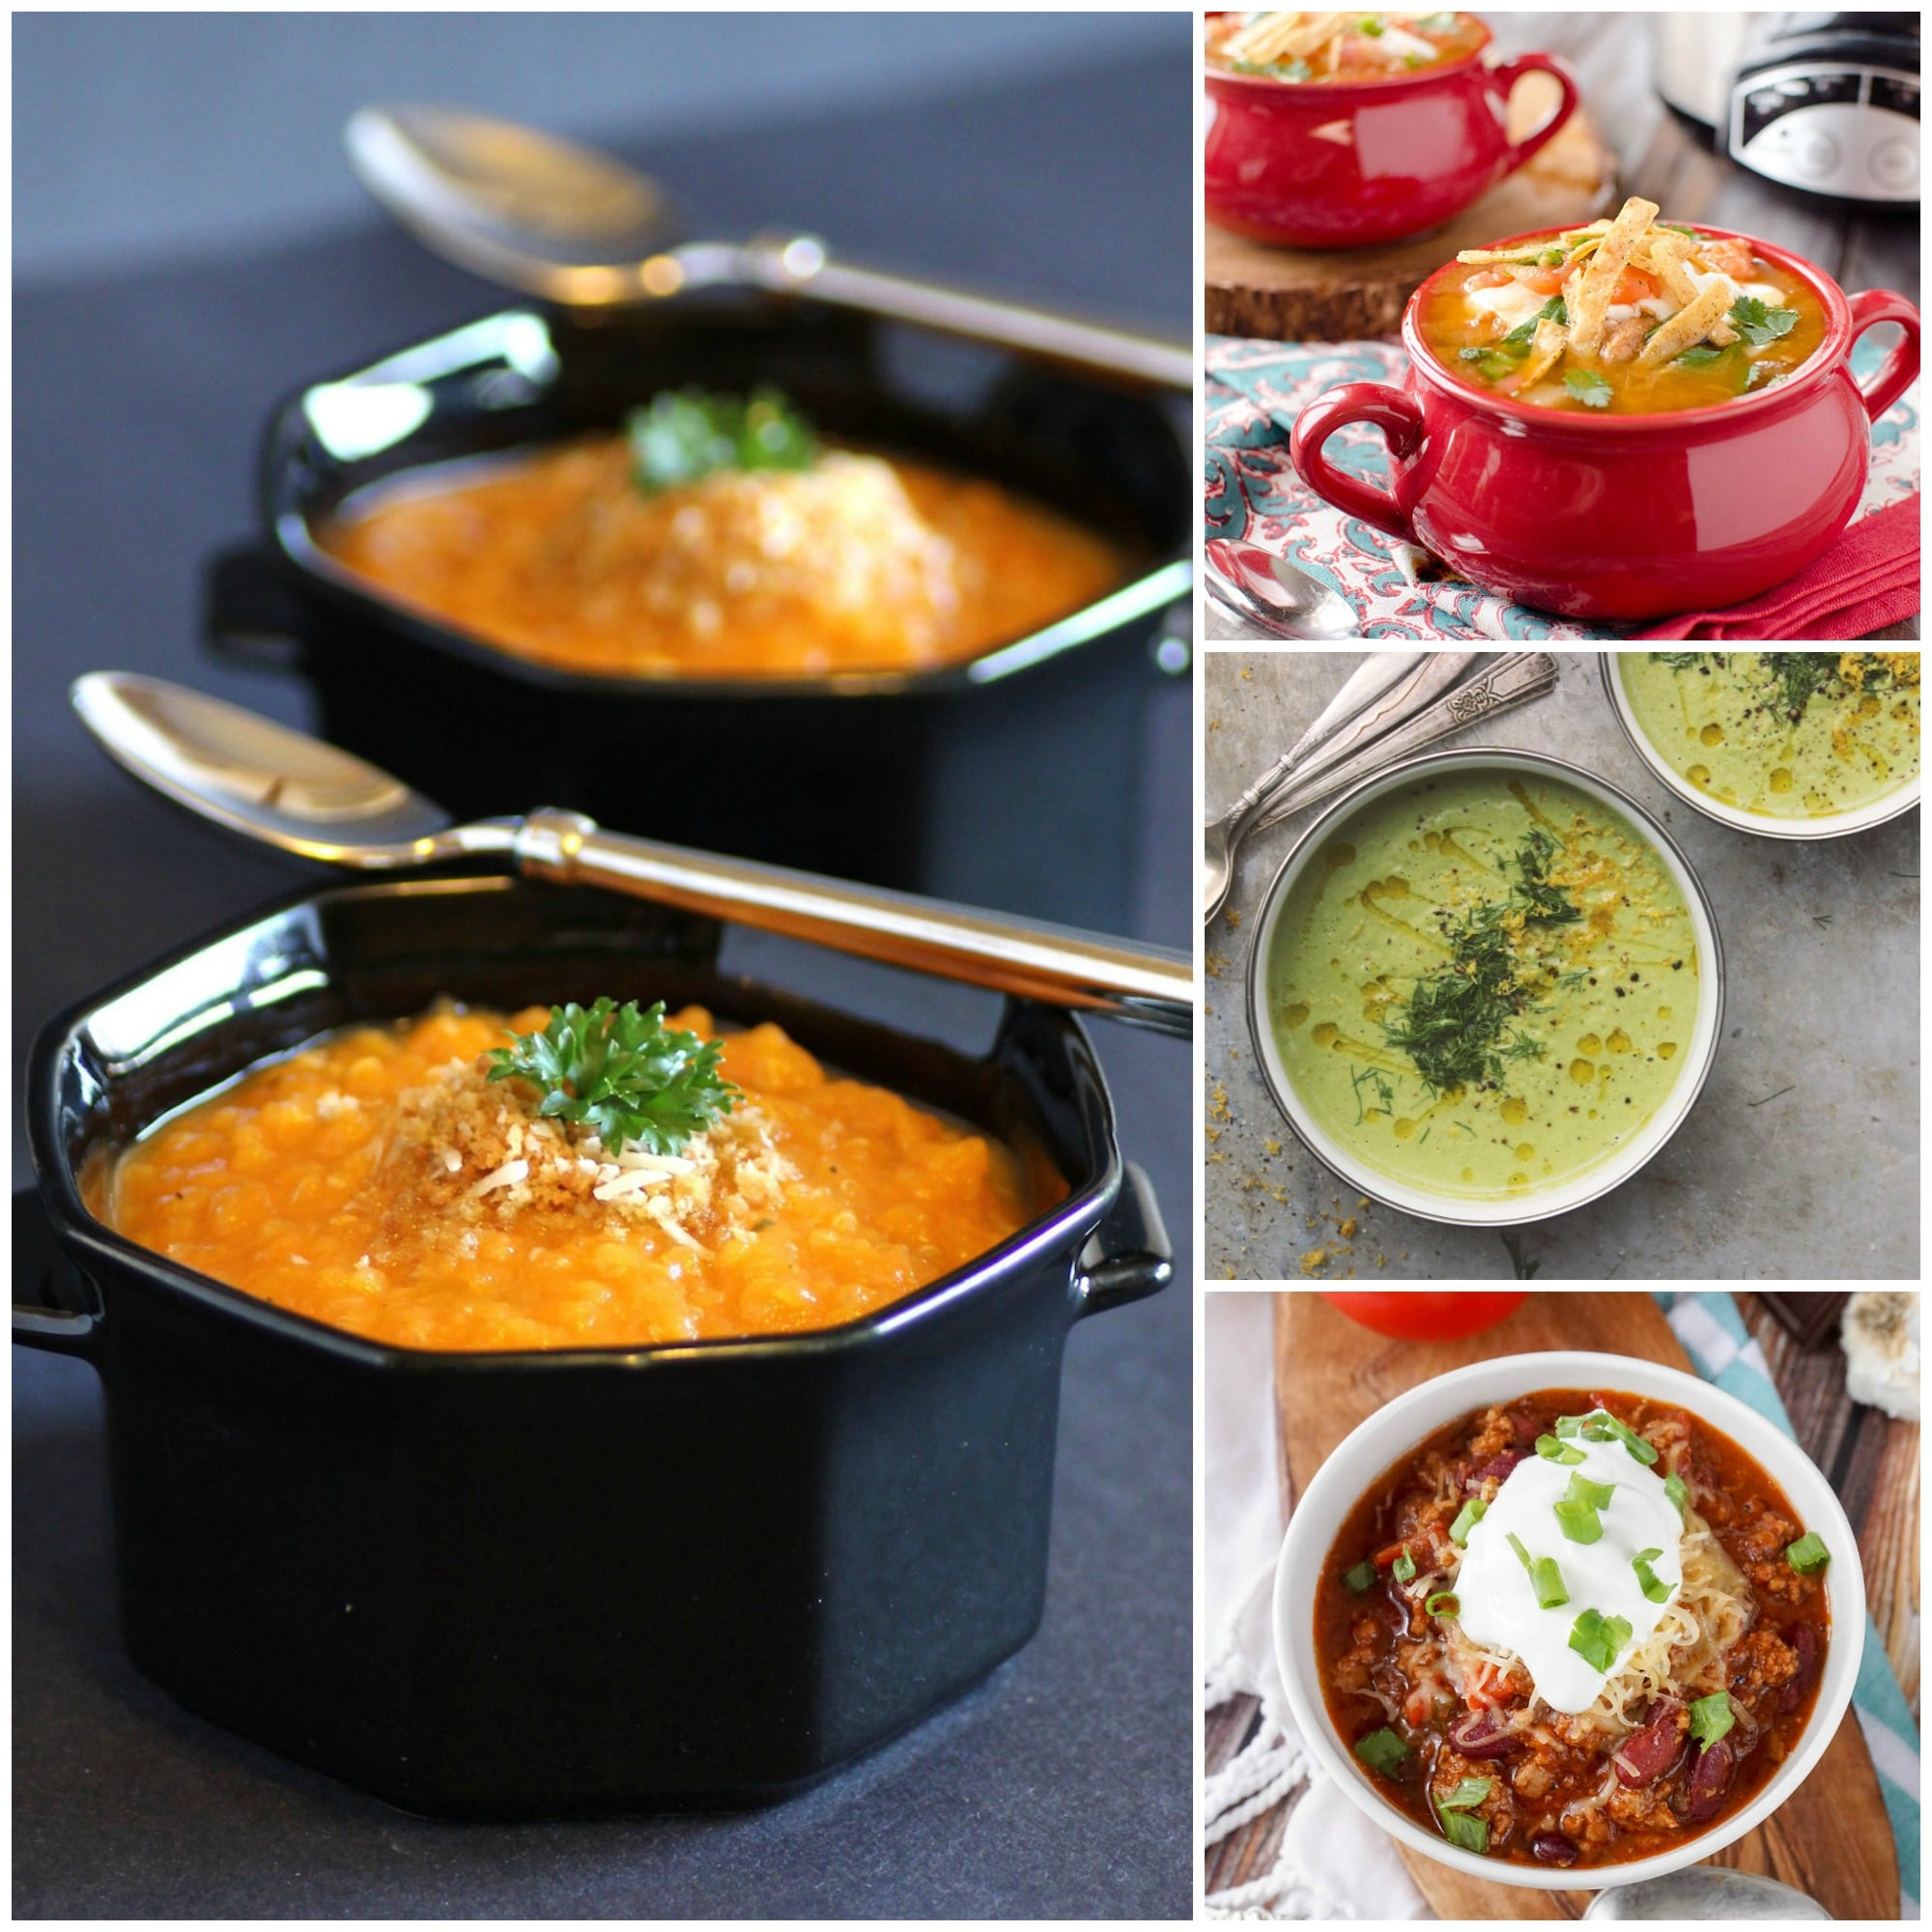 Soups and chilis archives two healthy kitchens 11 all time best healthy chili and soup recipes forumfinder Choice Image